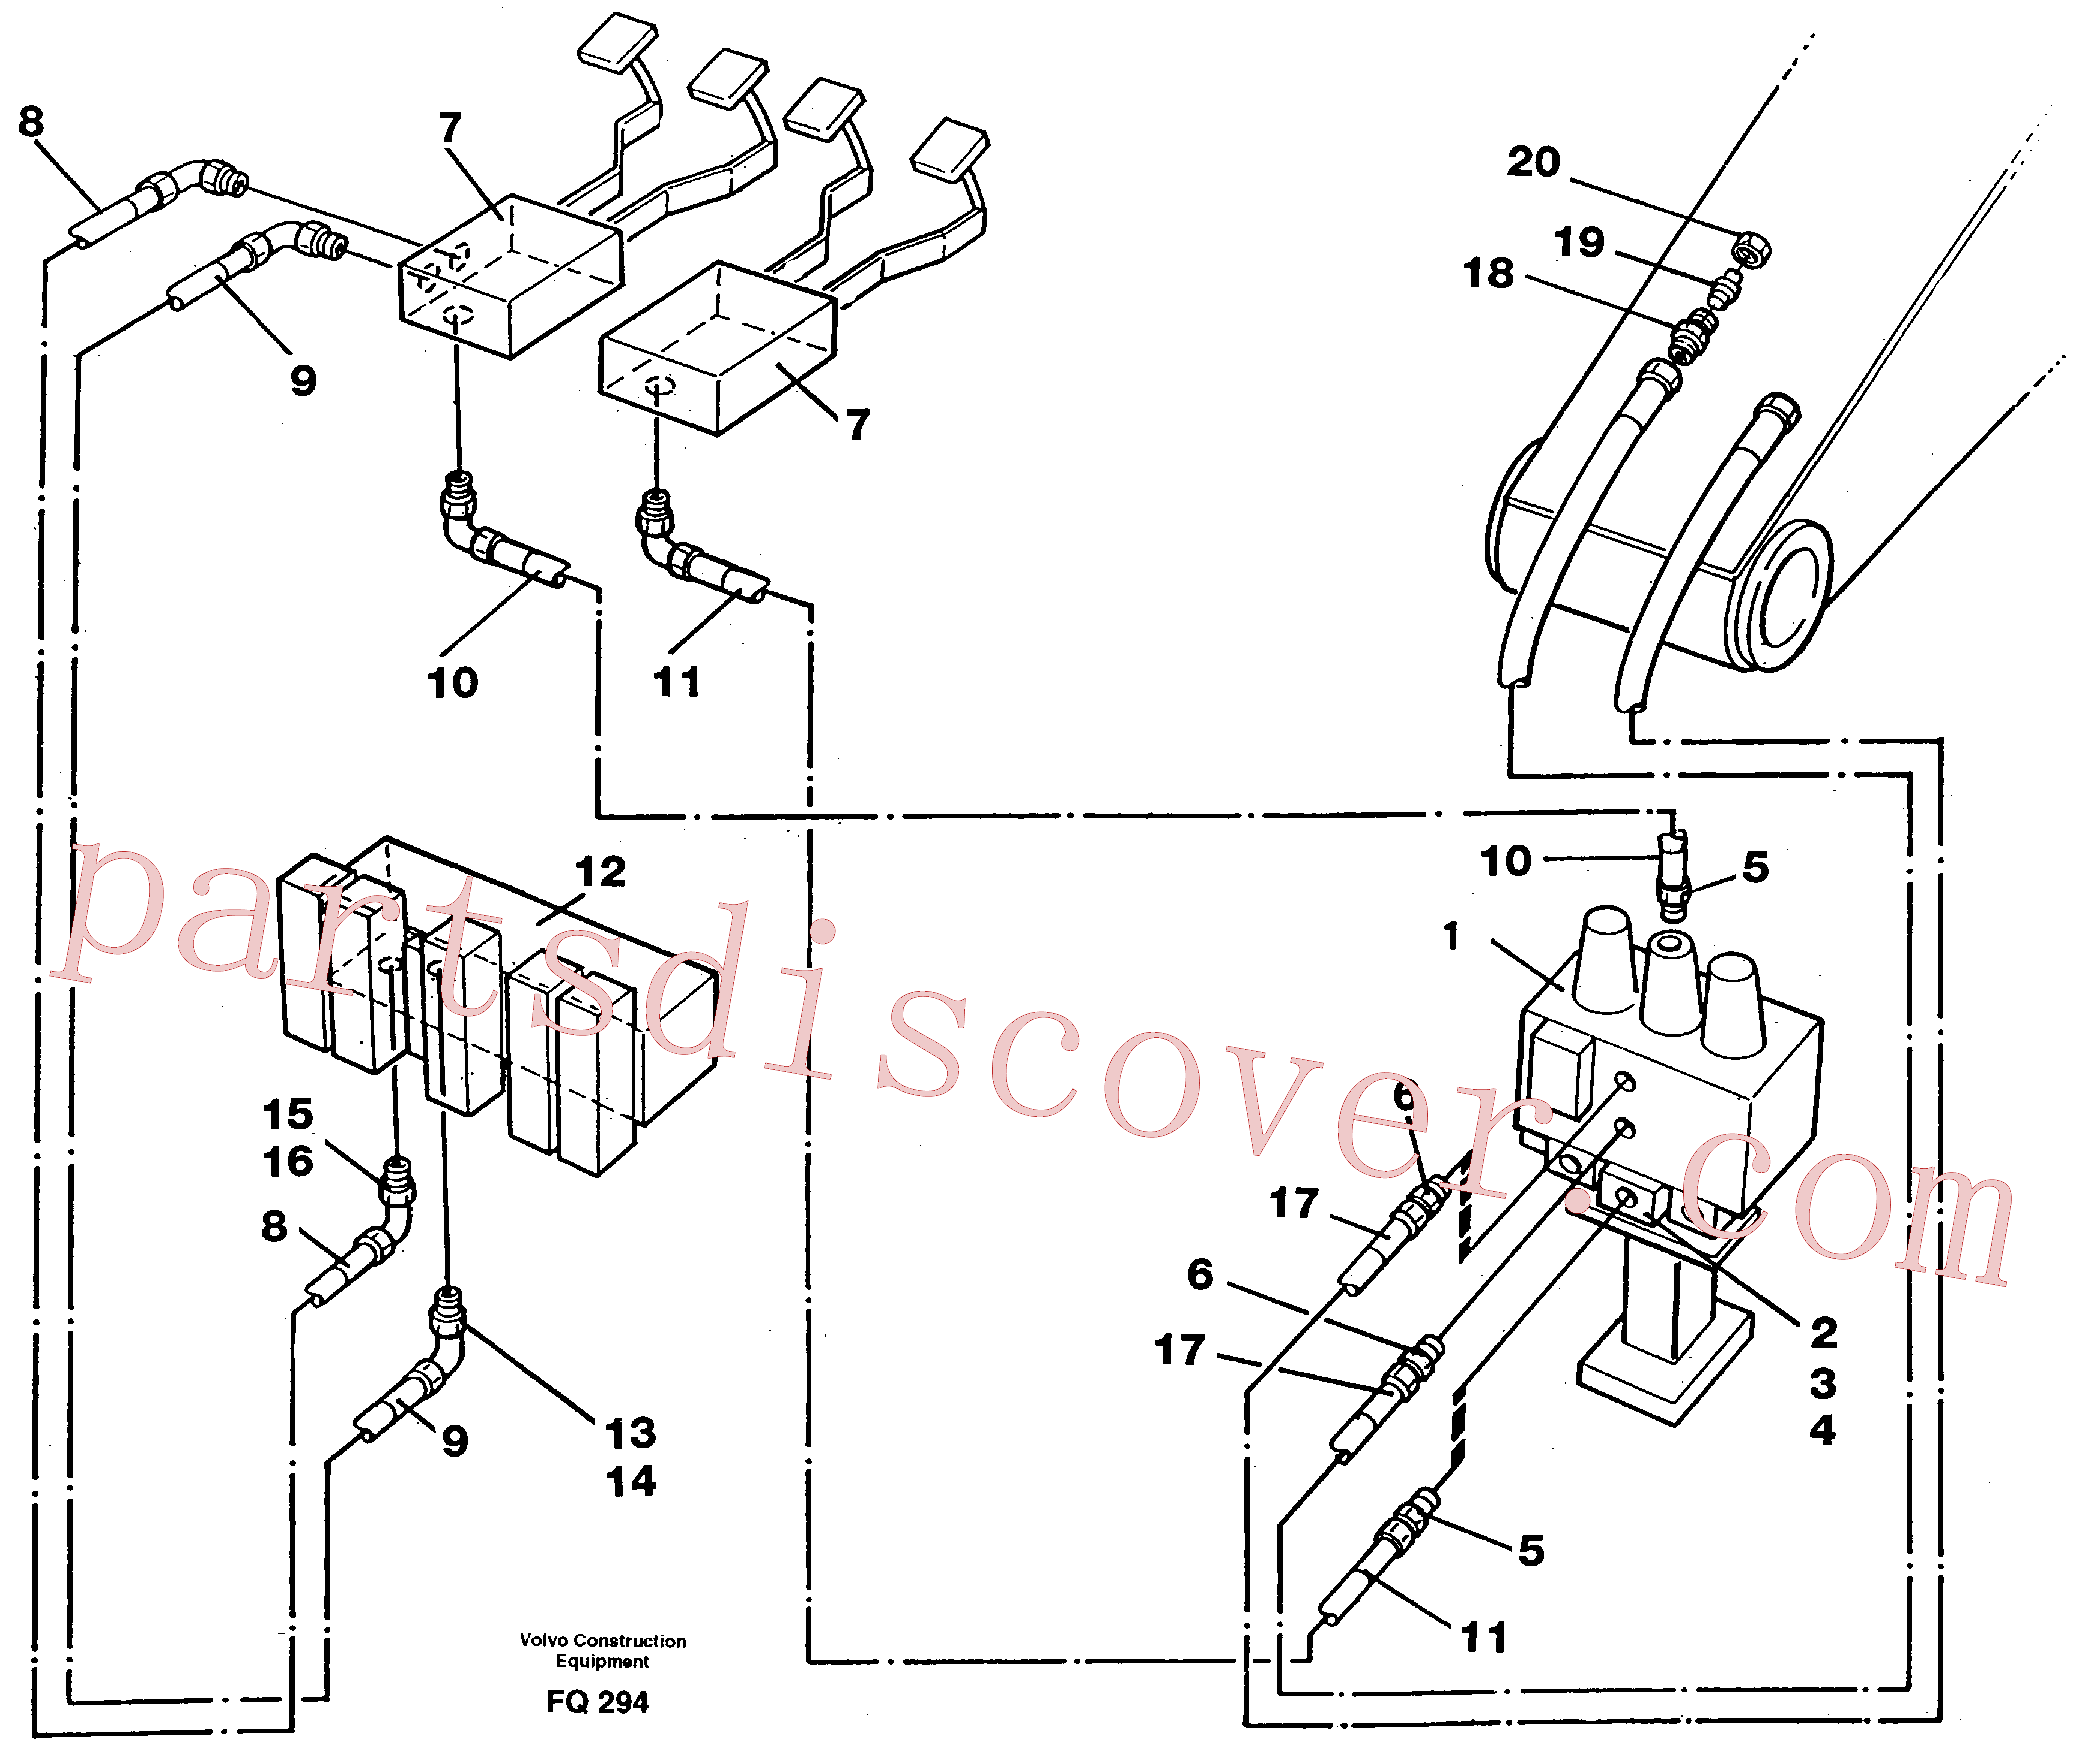 VOE14012404 for Volvo Slope bucket/rotator equipment for mono-boom in base machine(FQ294 assembly)